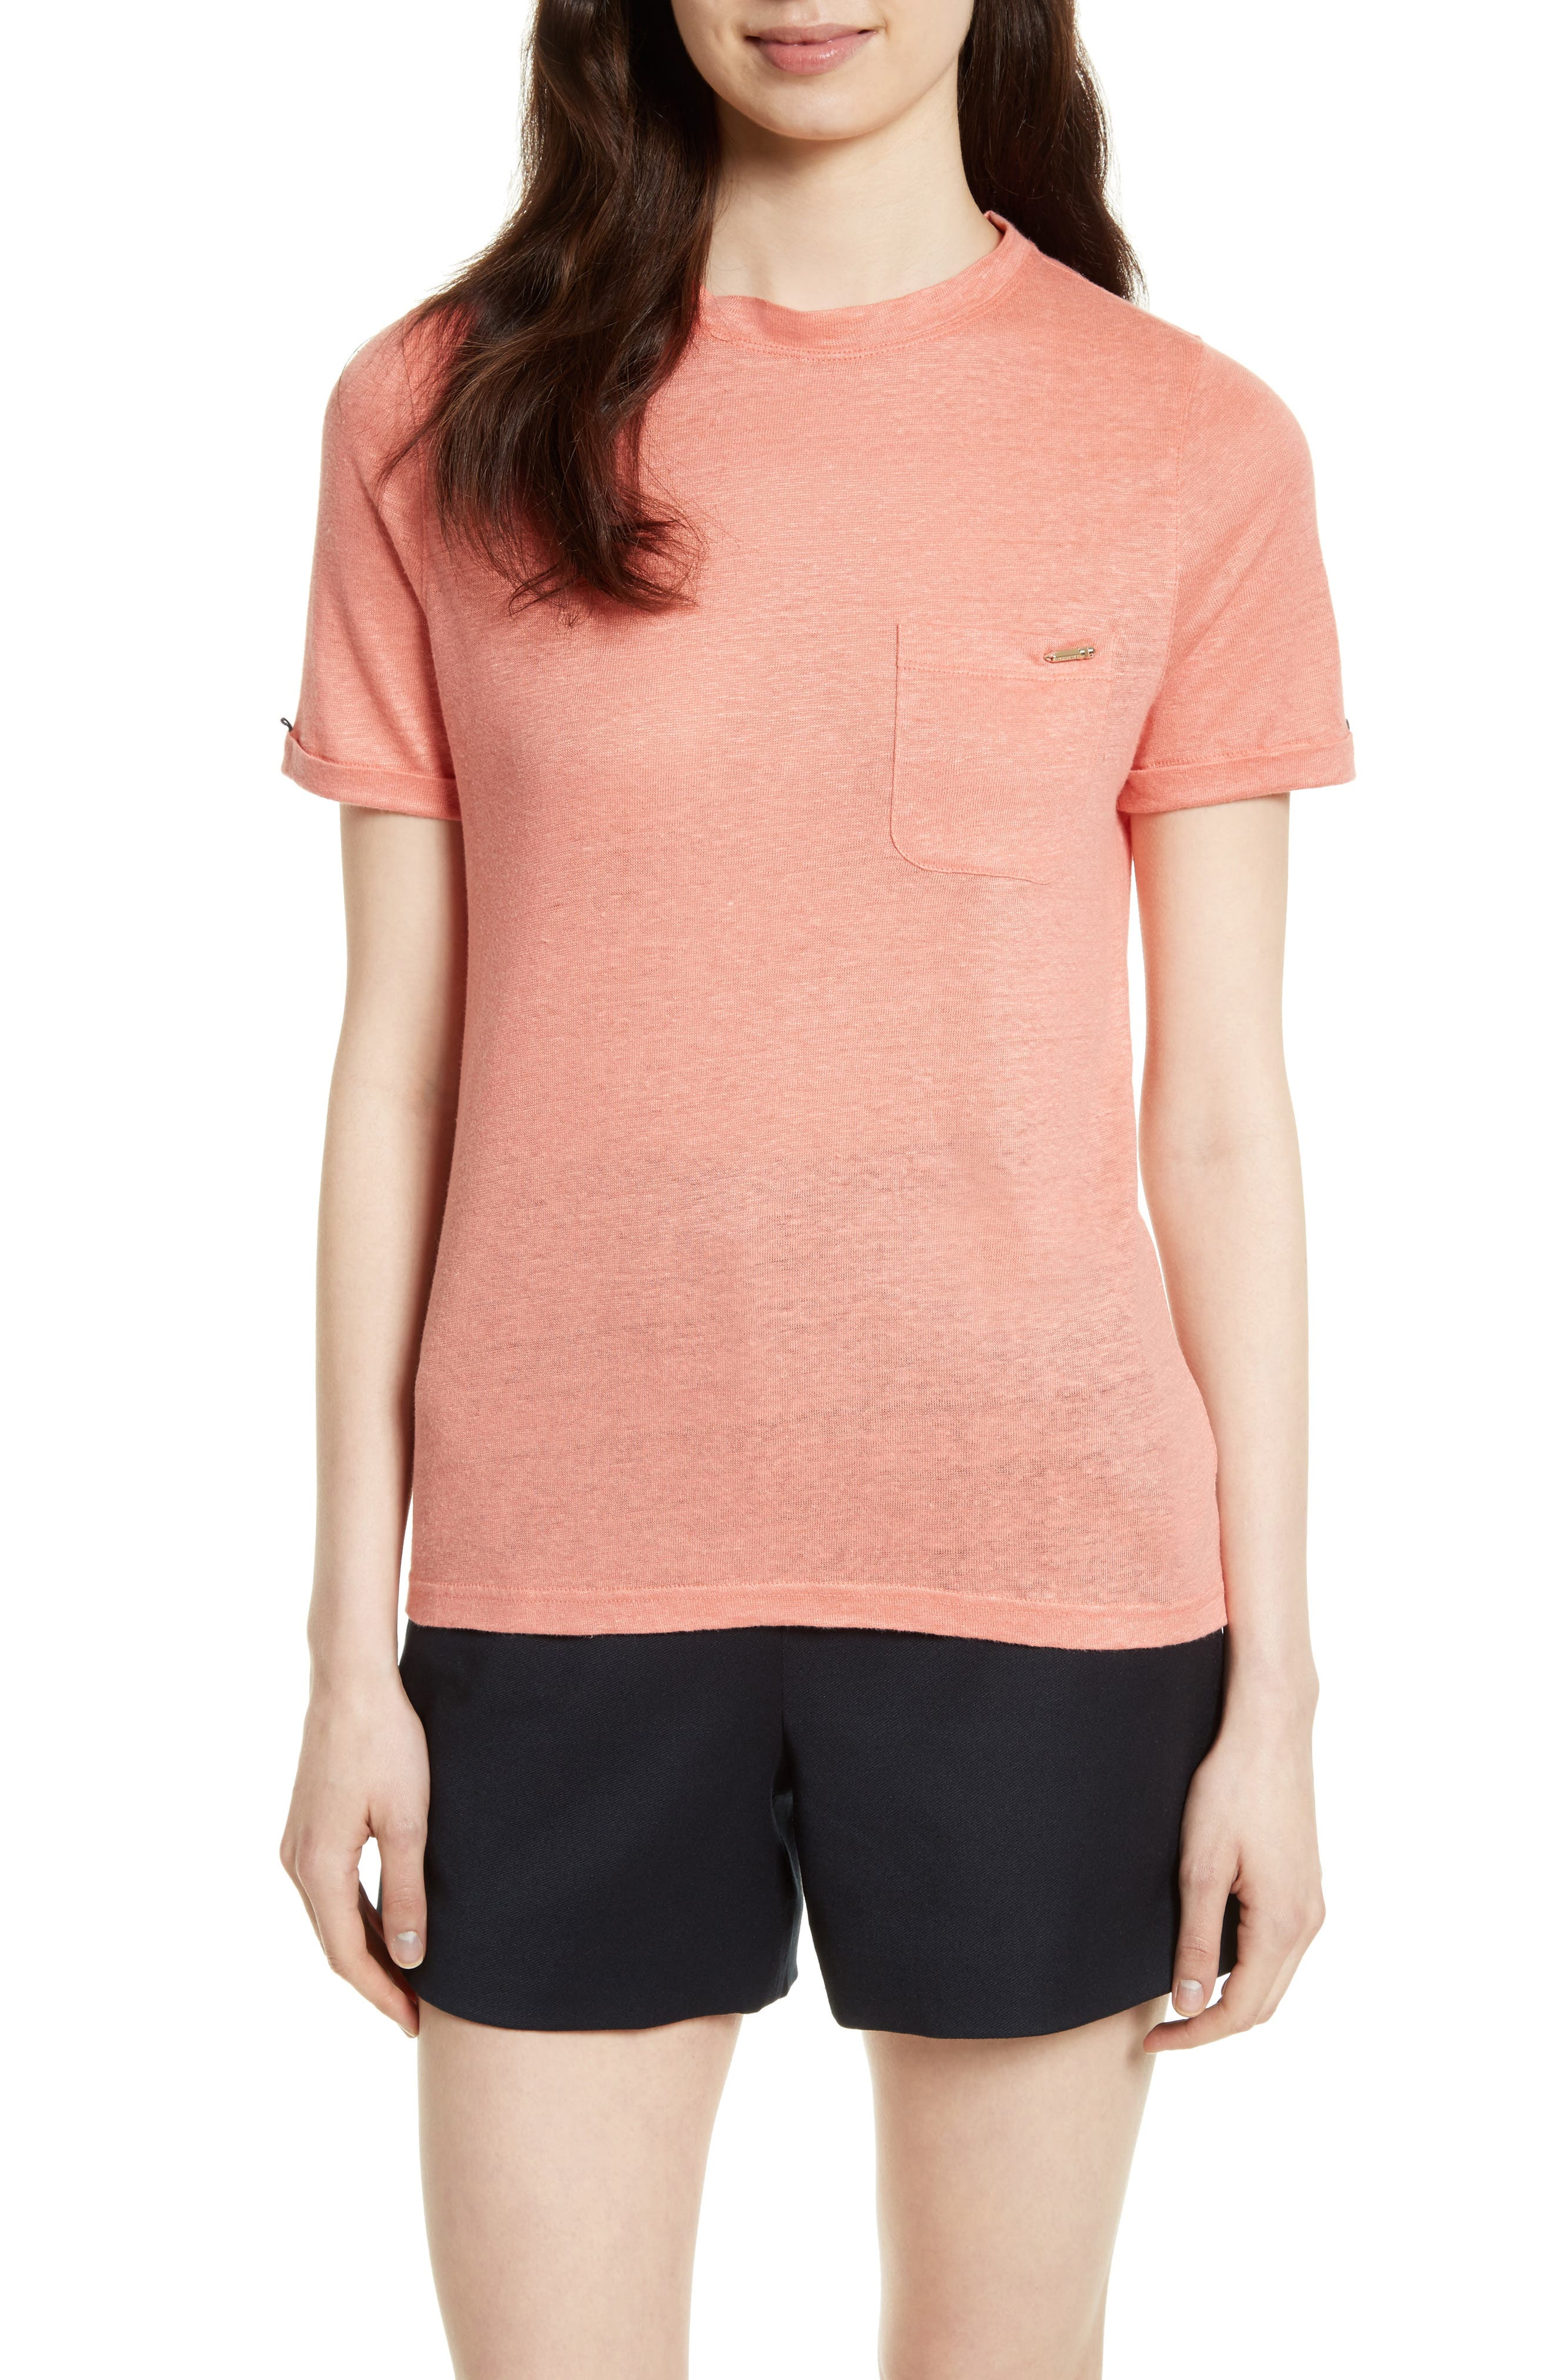 Main Image - Ted Baker London Harlaa Square Cut Linen Tee